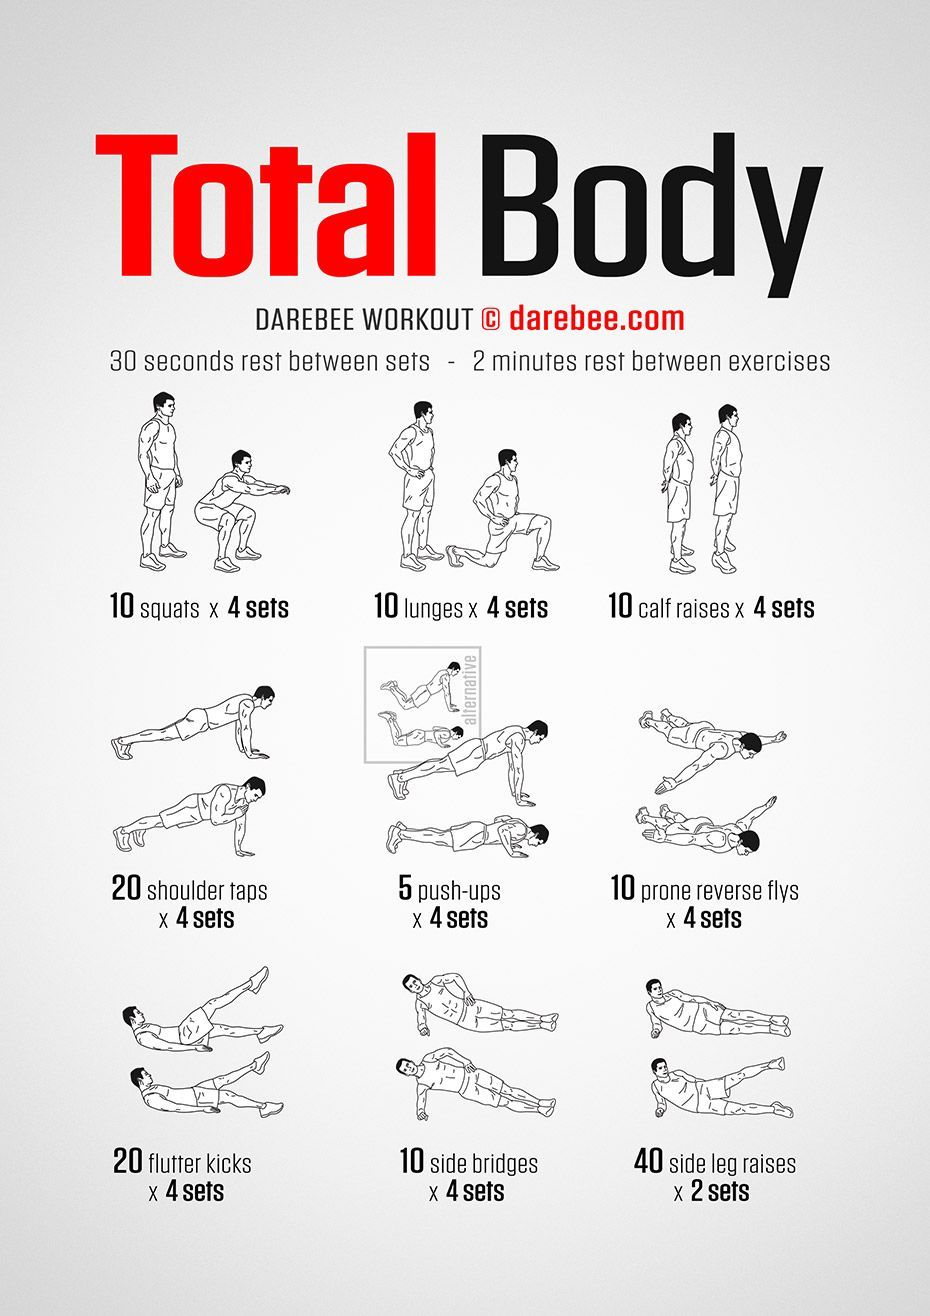 Total Body Workout in 2020 | Full body workout routine ...